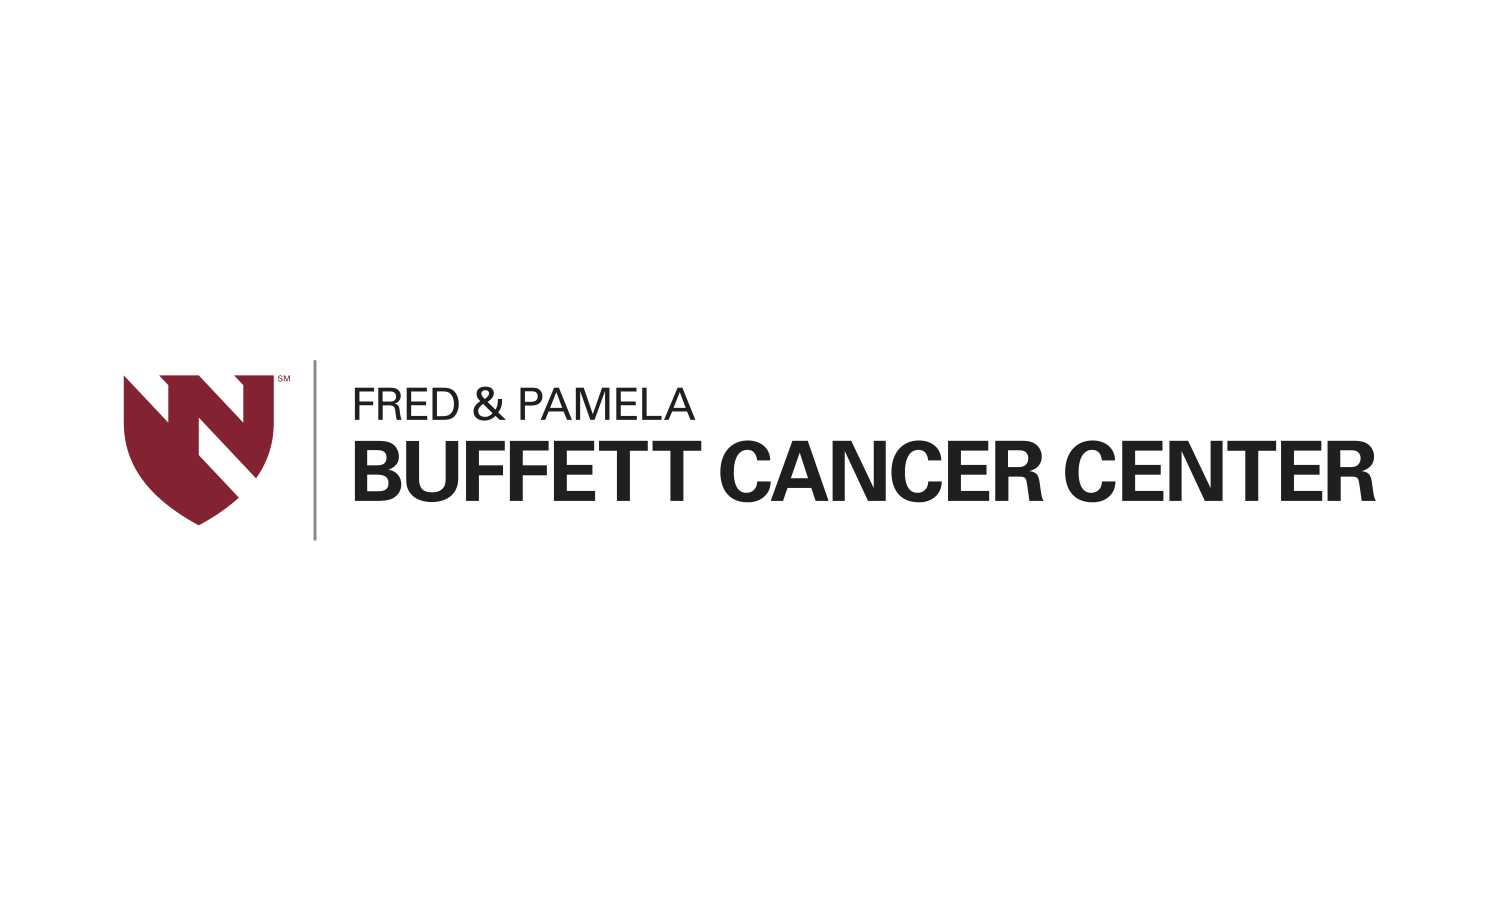 fred & pamela BUFFETT CANCER CENTER - CANCER SURVIVORSHIP GROUPS - Cancer Survivorship Group, Blood and Marrow Stem Cell Transplants Patient/Family Luncheon, Brain Tumor Cancer Support Group and Colorectal Cancer Support Group.